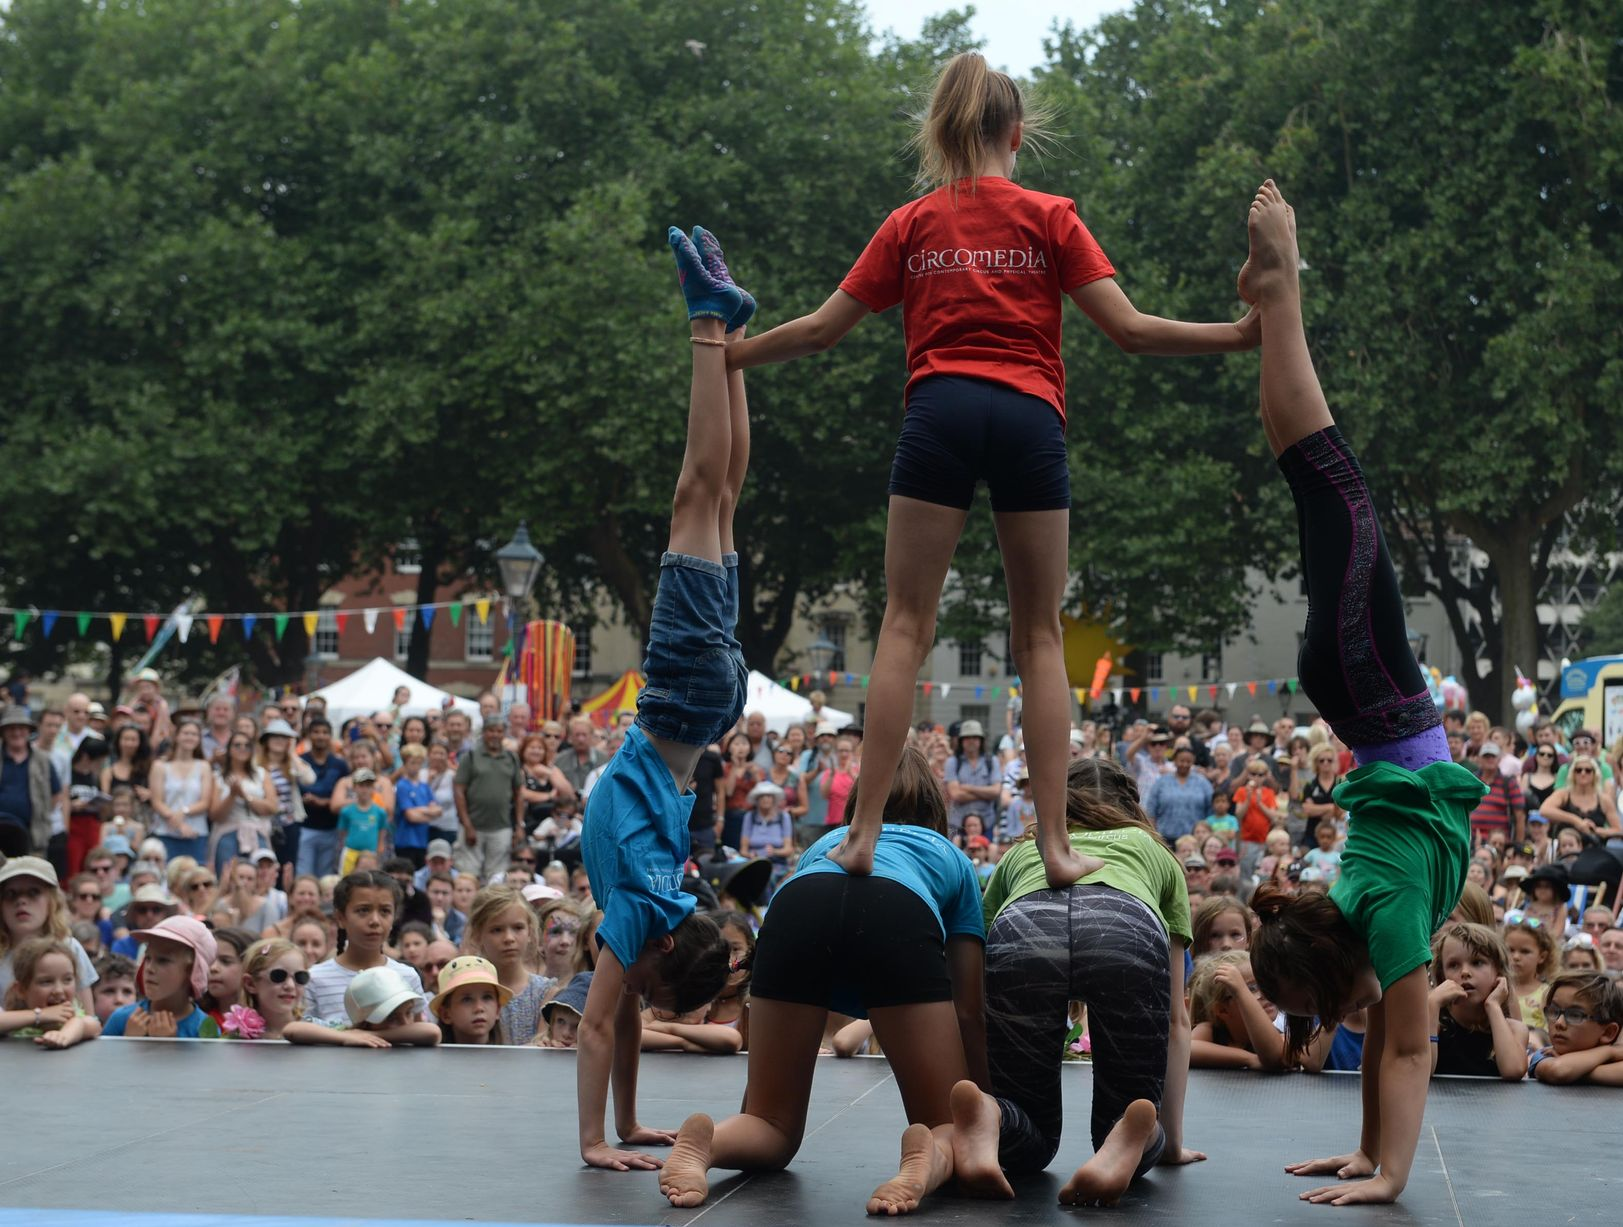 Circomedia Youth Circus Showcase, Cirque Bijou, Circus Playground, photo Bristol Evening Post.jpg